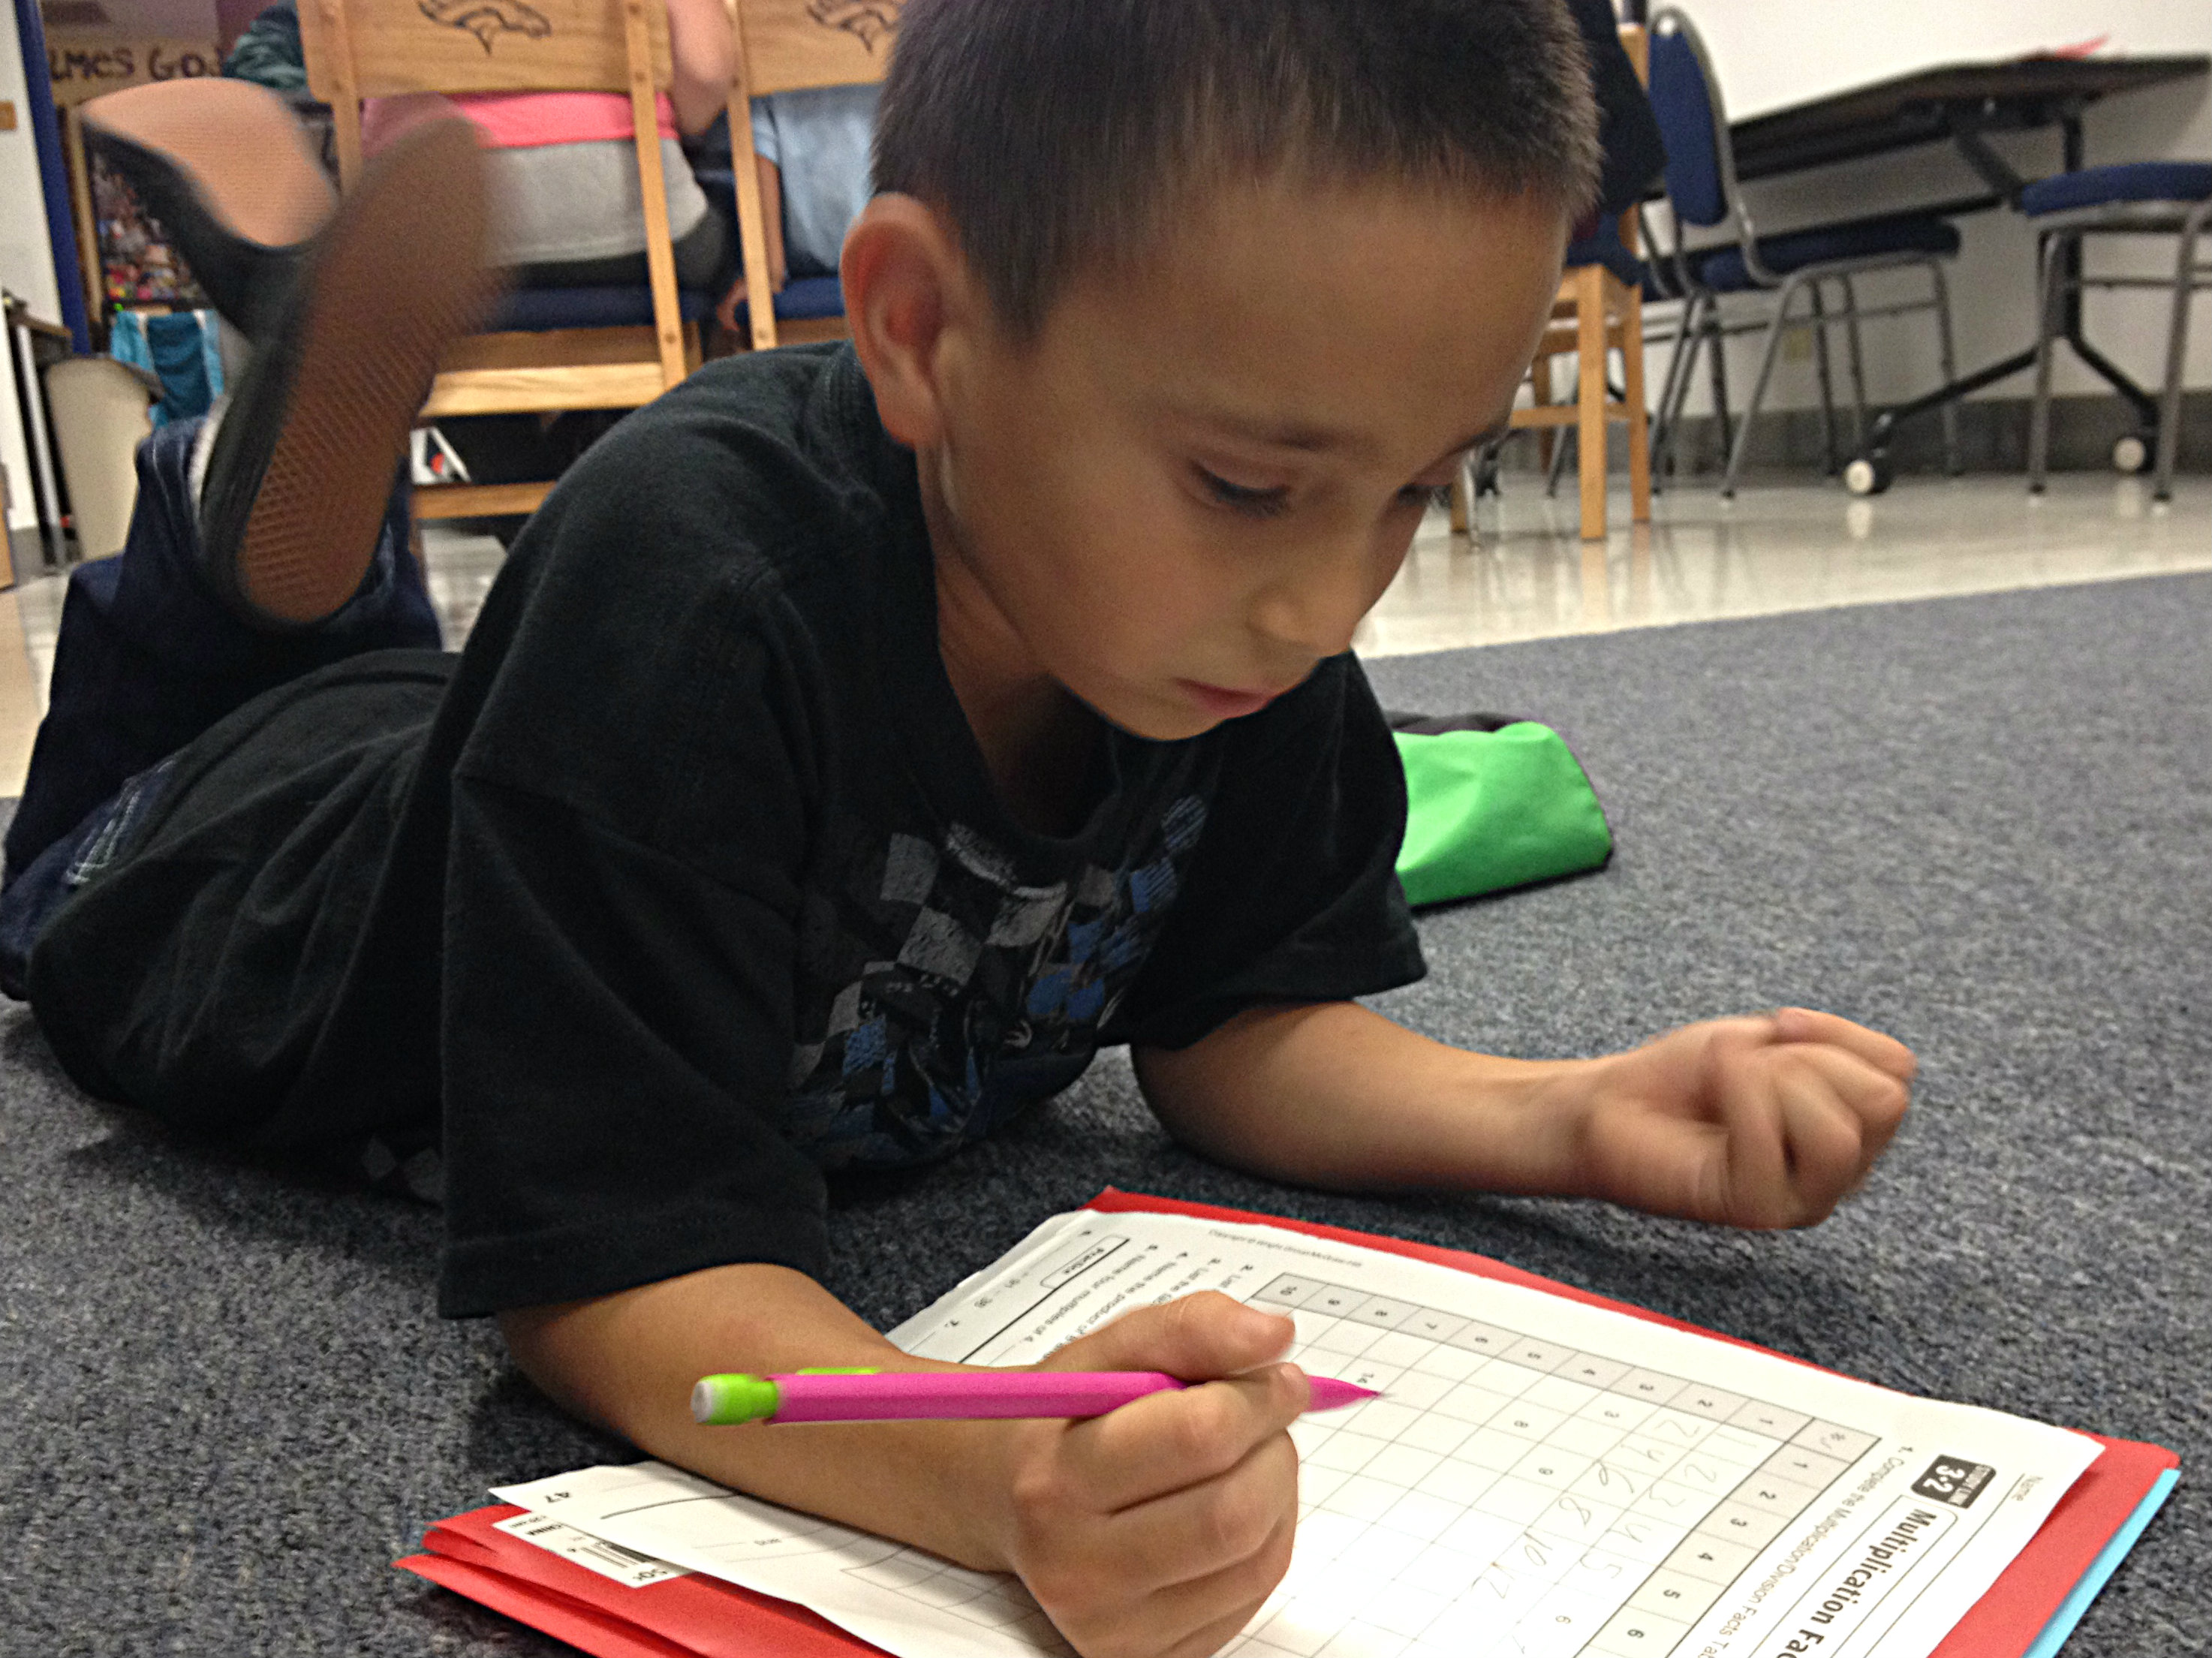 <p>James Rodriguez, 9, practices math homework in the Bronco room at The Crossing where he lives.</p>